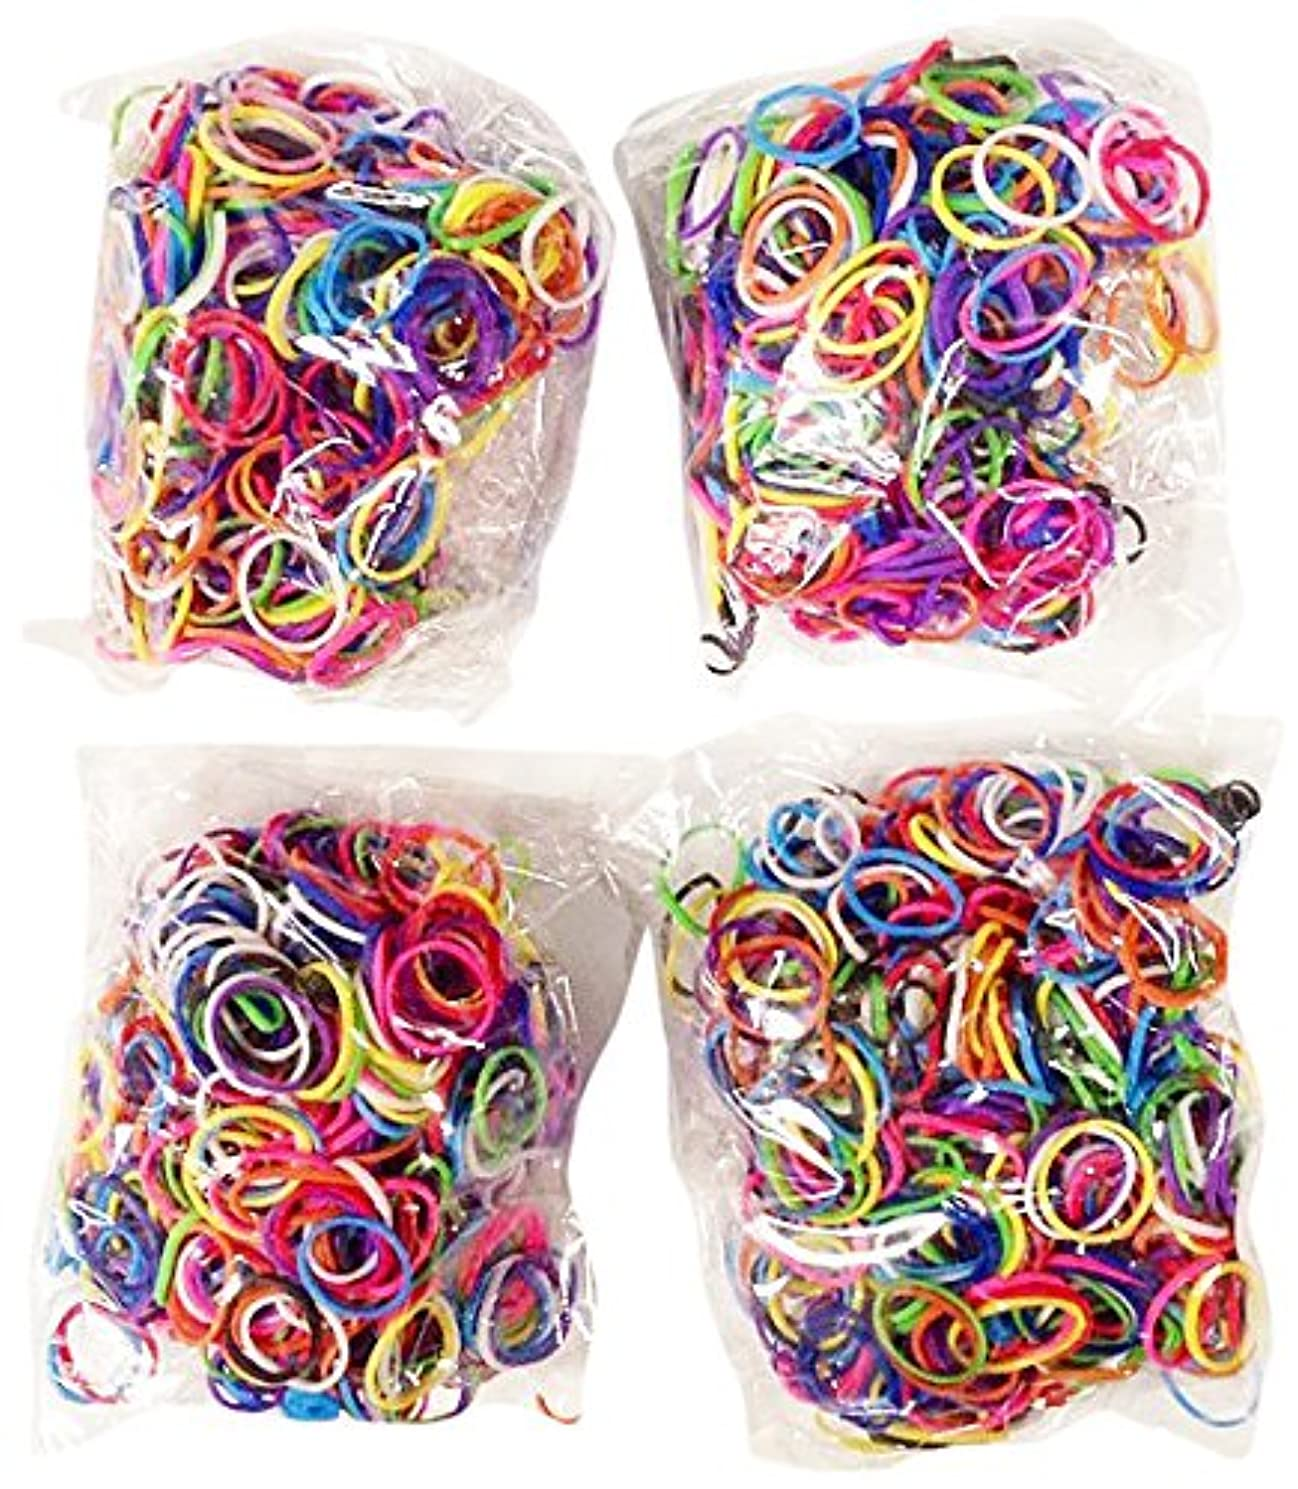 Bluedot Trading 2400-Piece Multicolor Rubber Band Kids Craft with Rainbow?Bracelet Kit Refill Pack